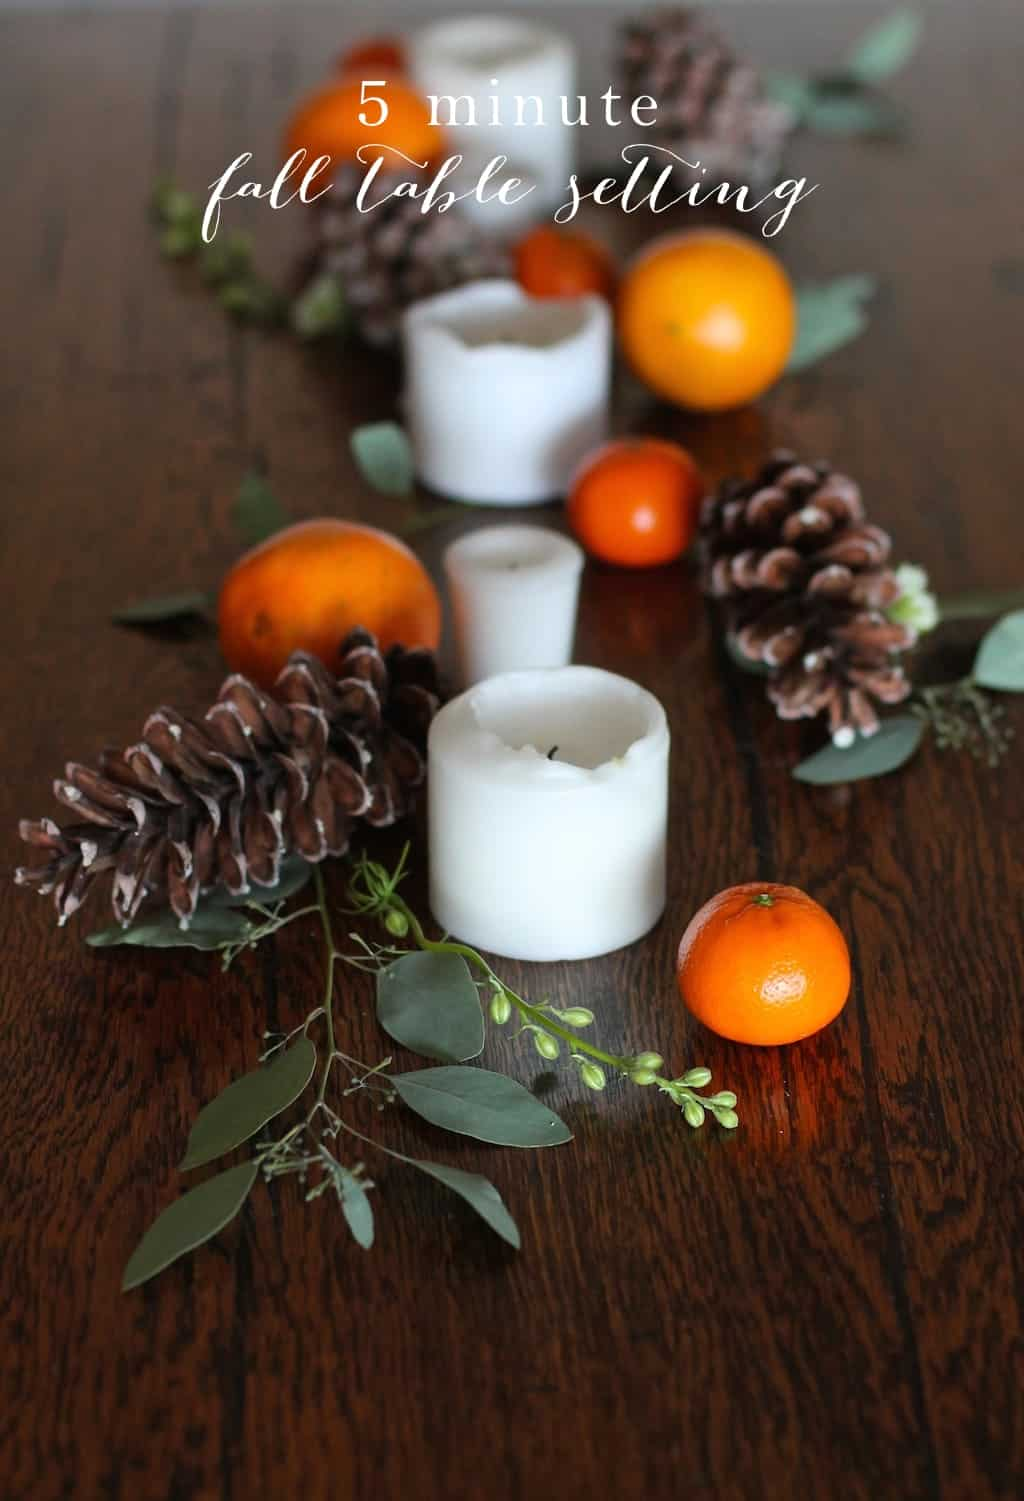 5-minute table setting with candles, oranges, and pine cones